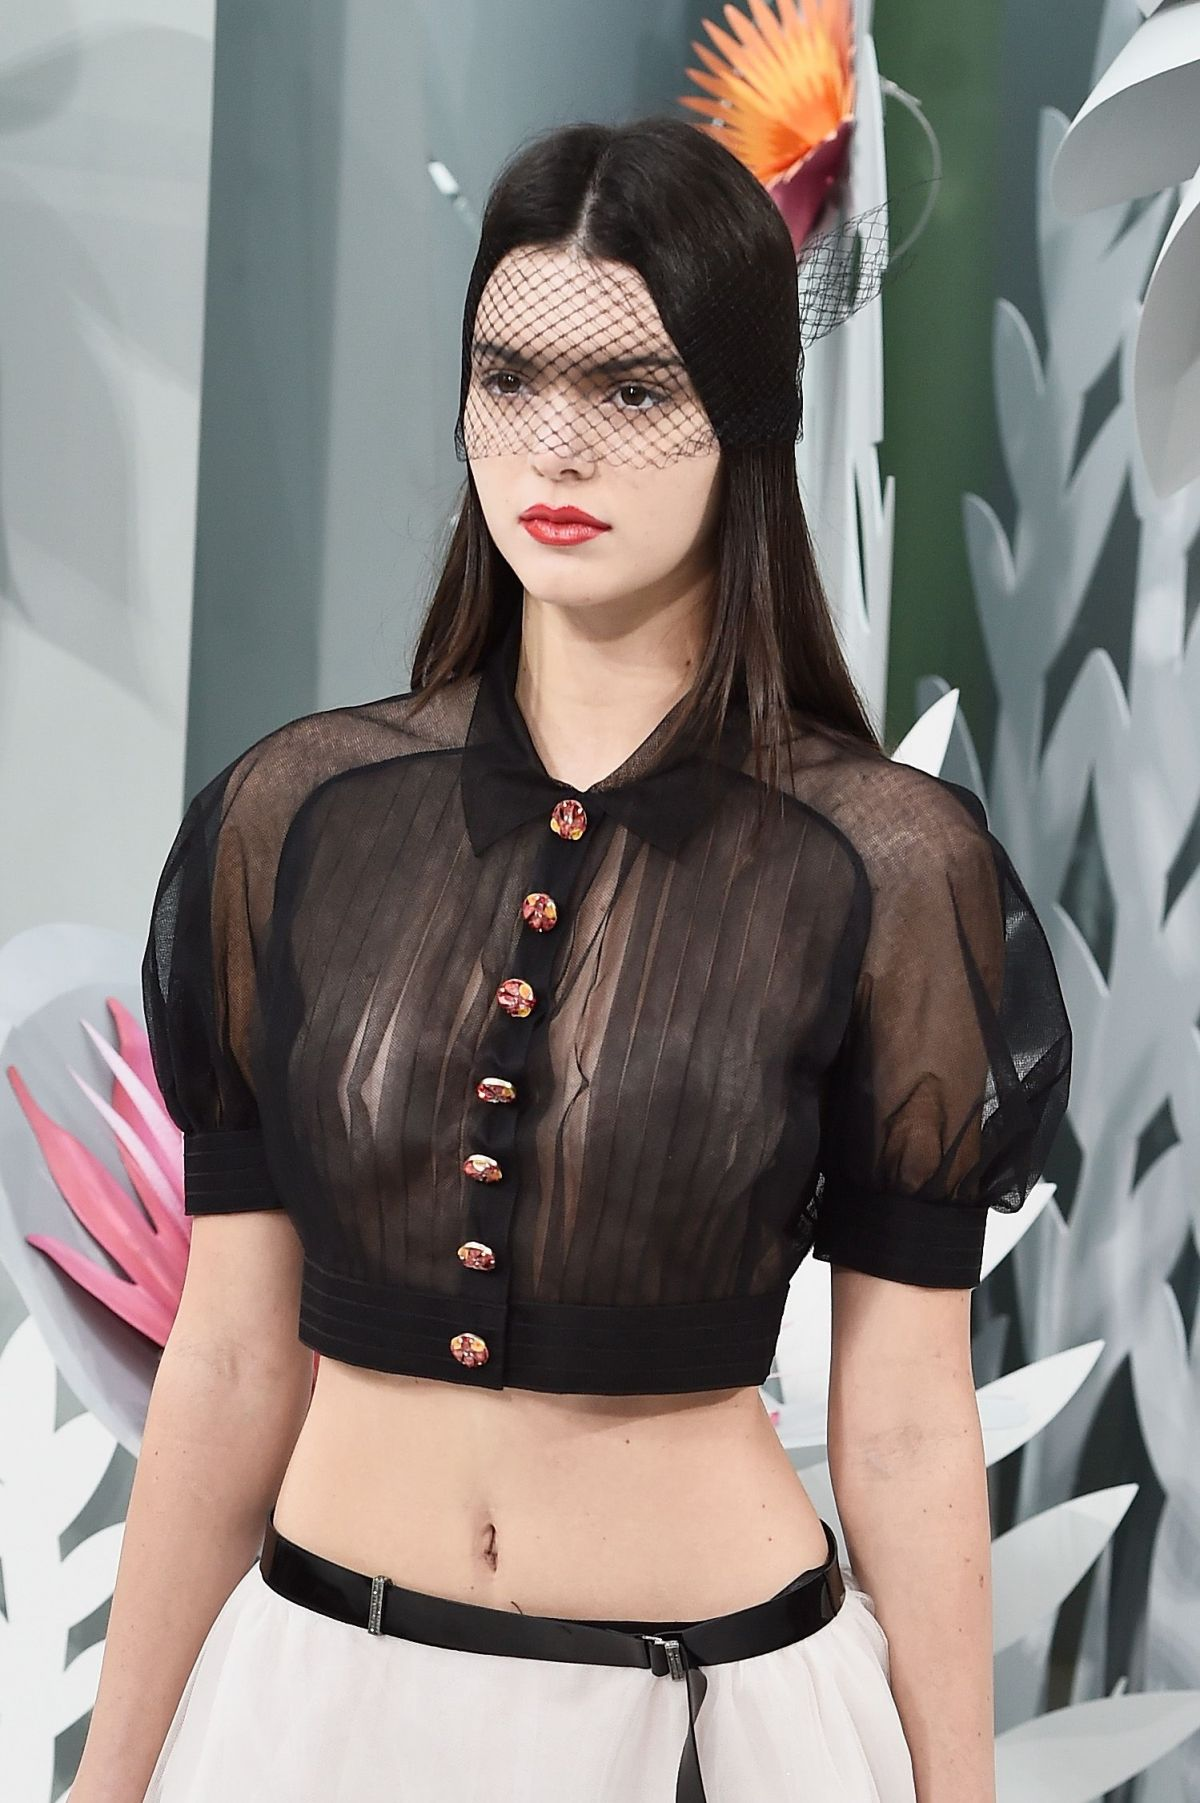 Chanel Fashion Show 2015 Kendall Jenner KENDALL JENNER on the Runway